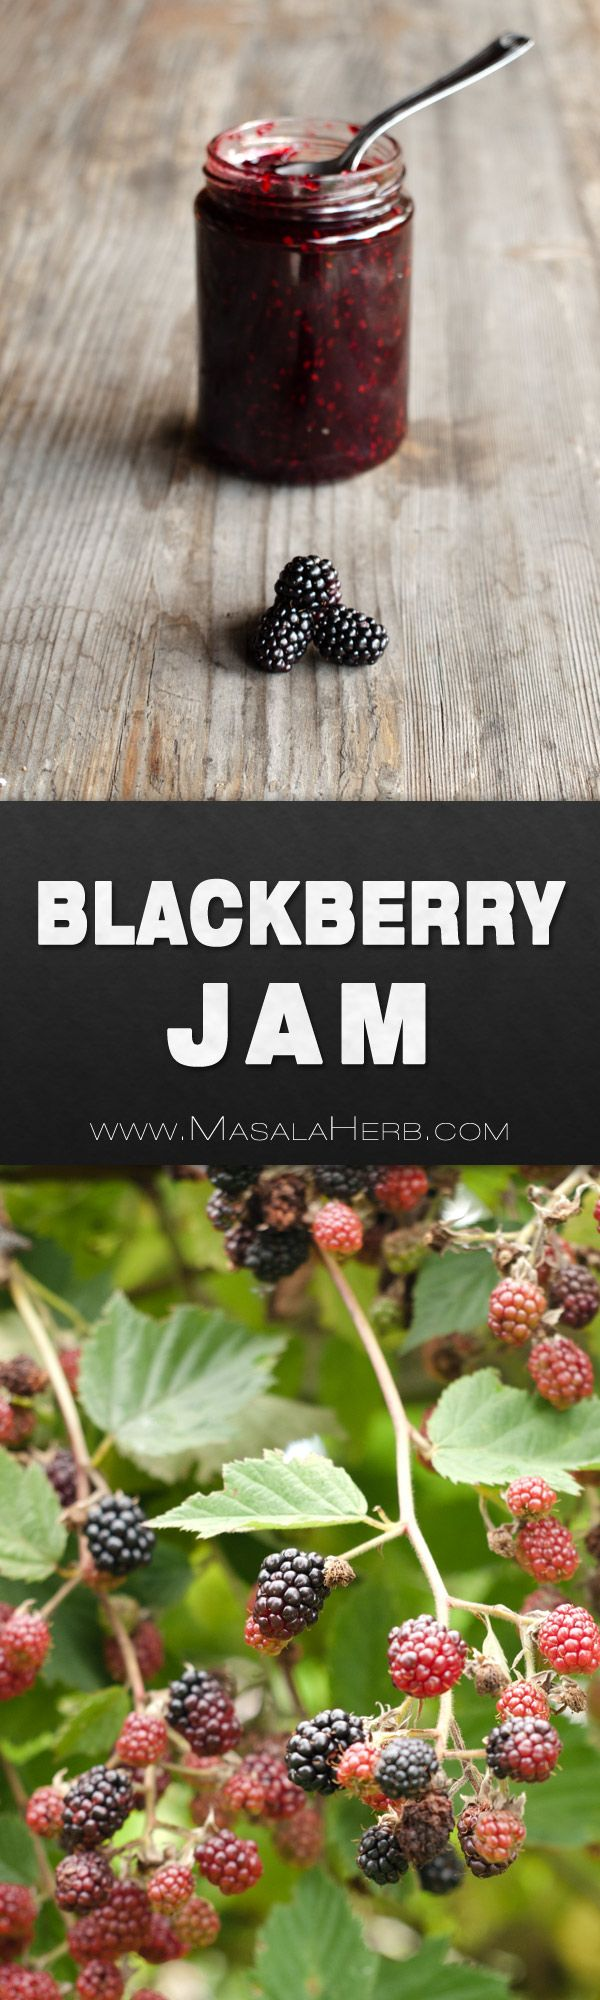 Blackberry Jam Recipe - How to make Blackberry Jam without pectin